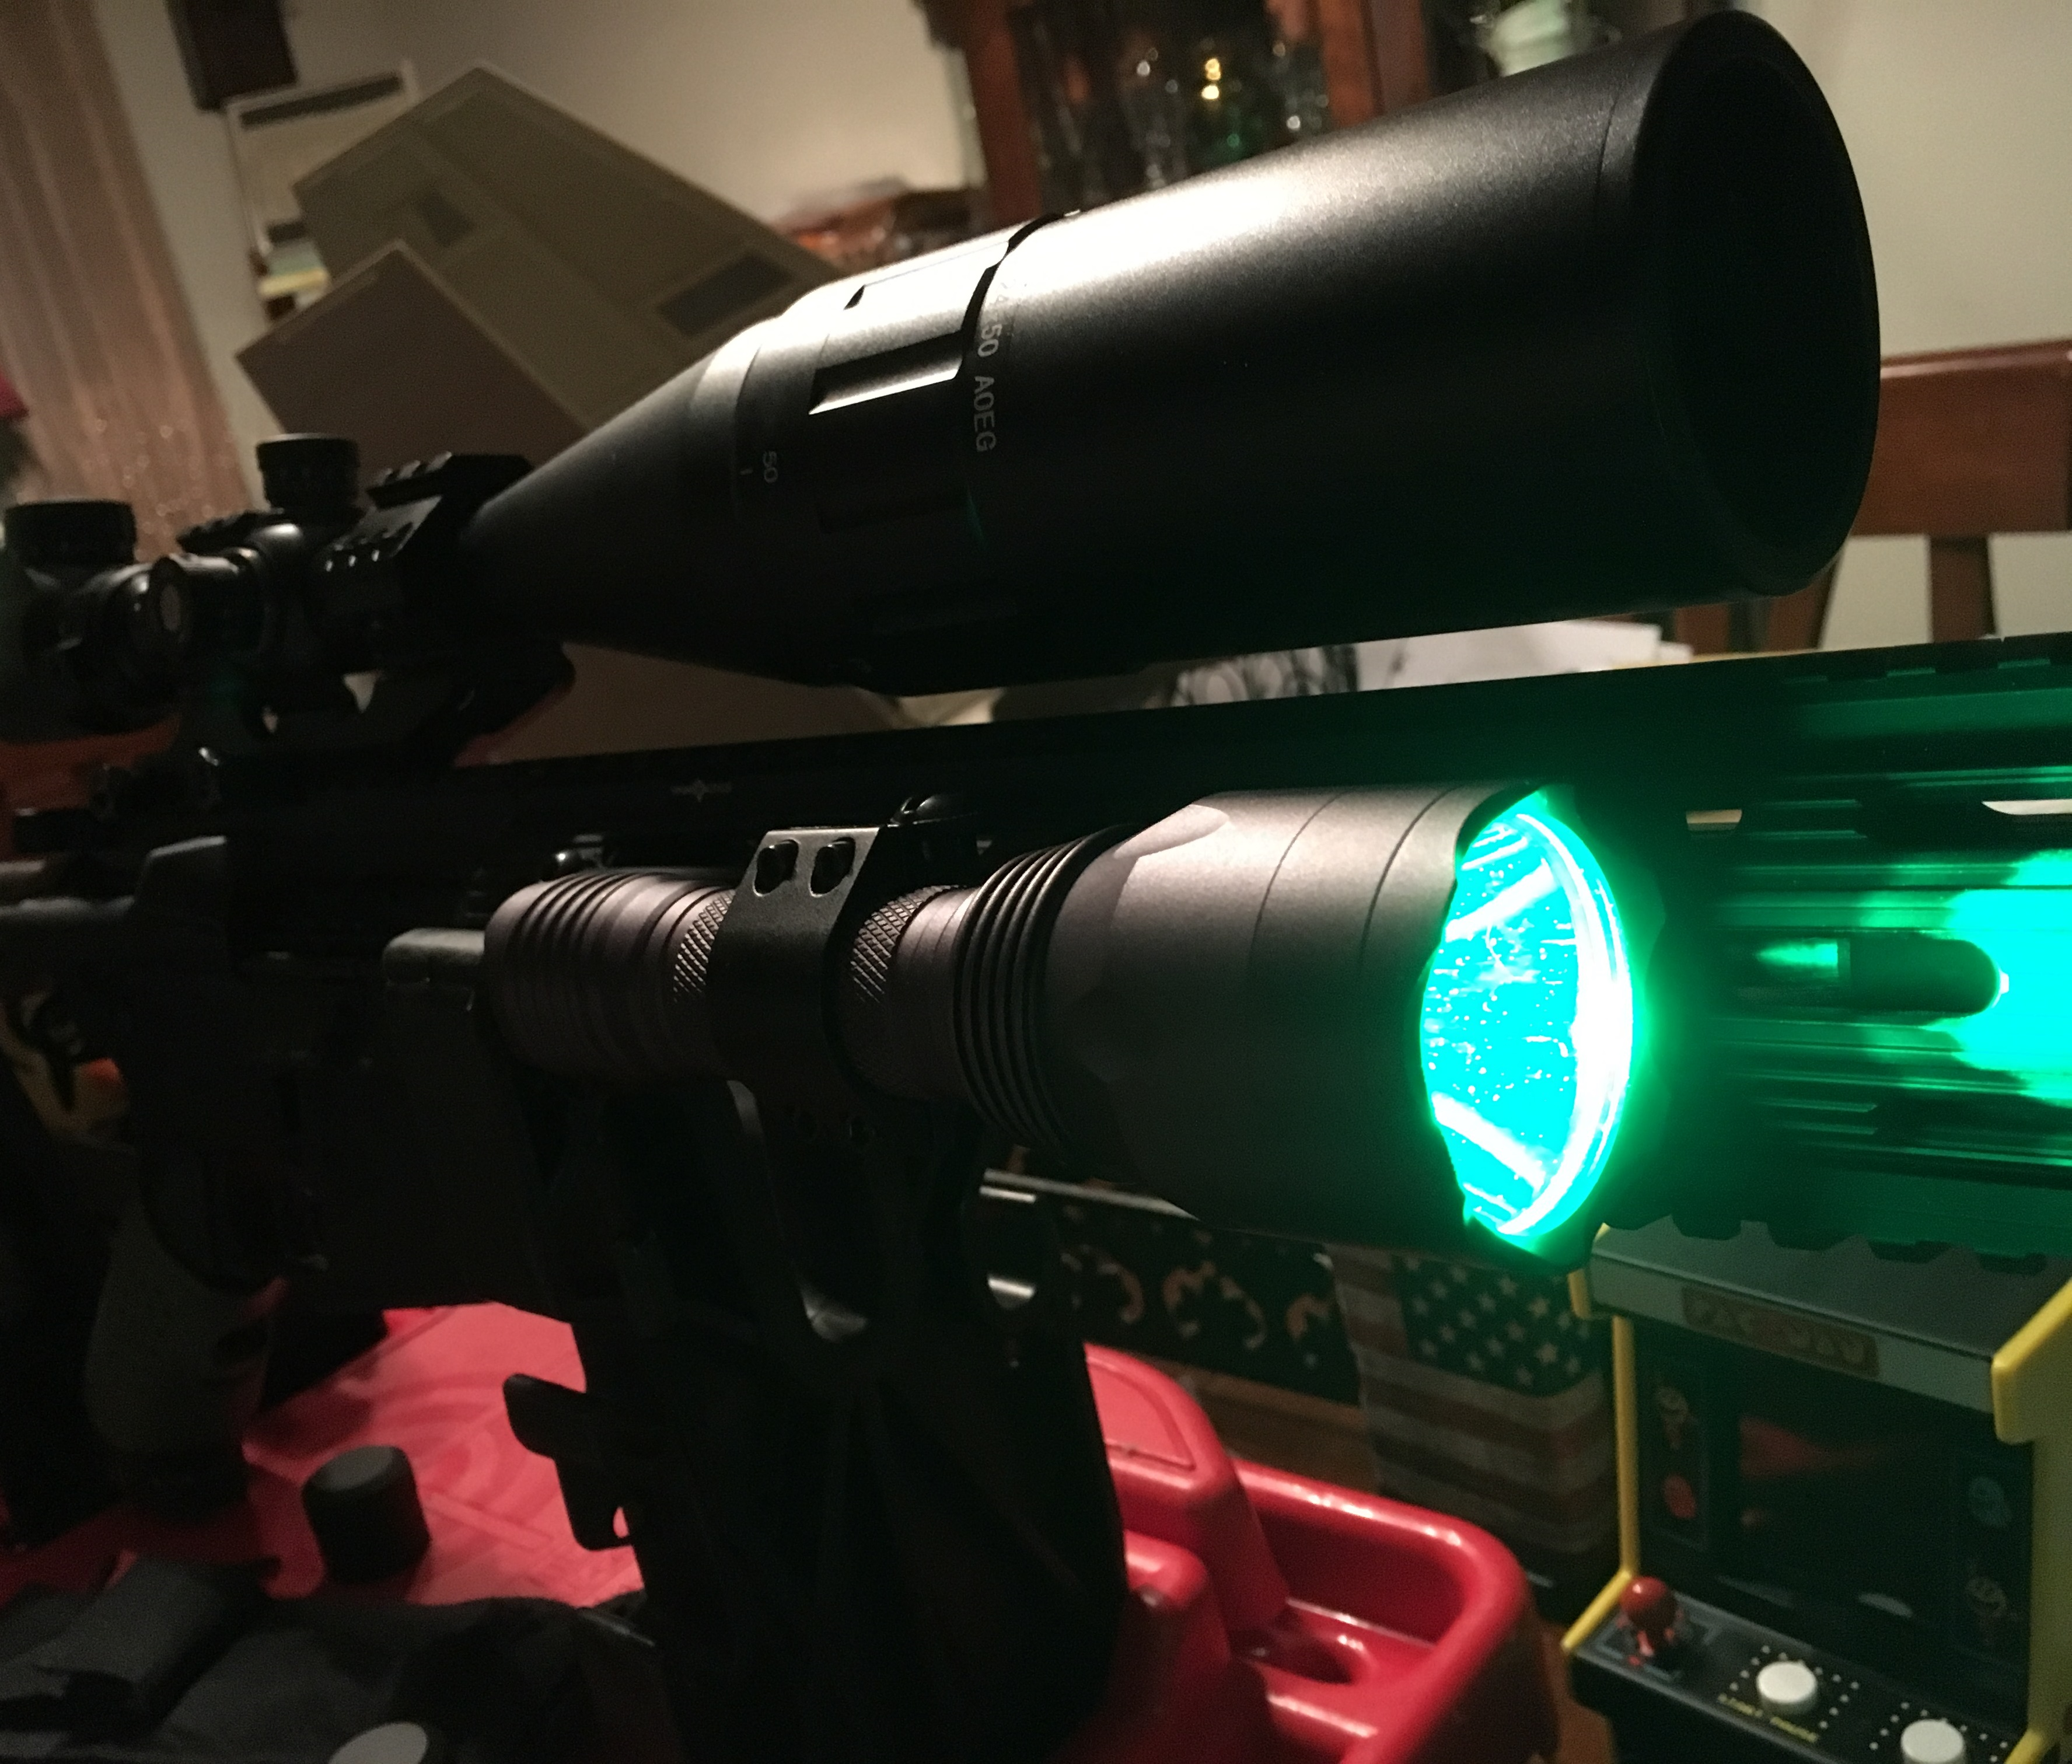 VASTFIRE Green Hunting Flashlight for Nighttime Wild Hog and Predator Hunting -Texas Tested Review {Video}